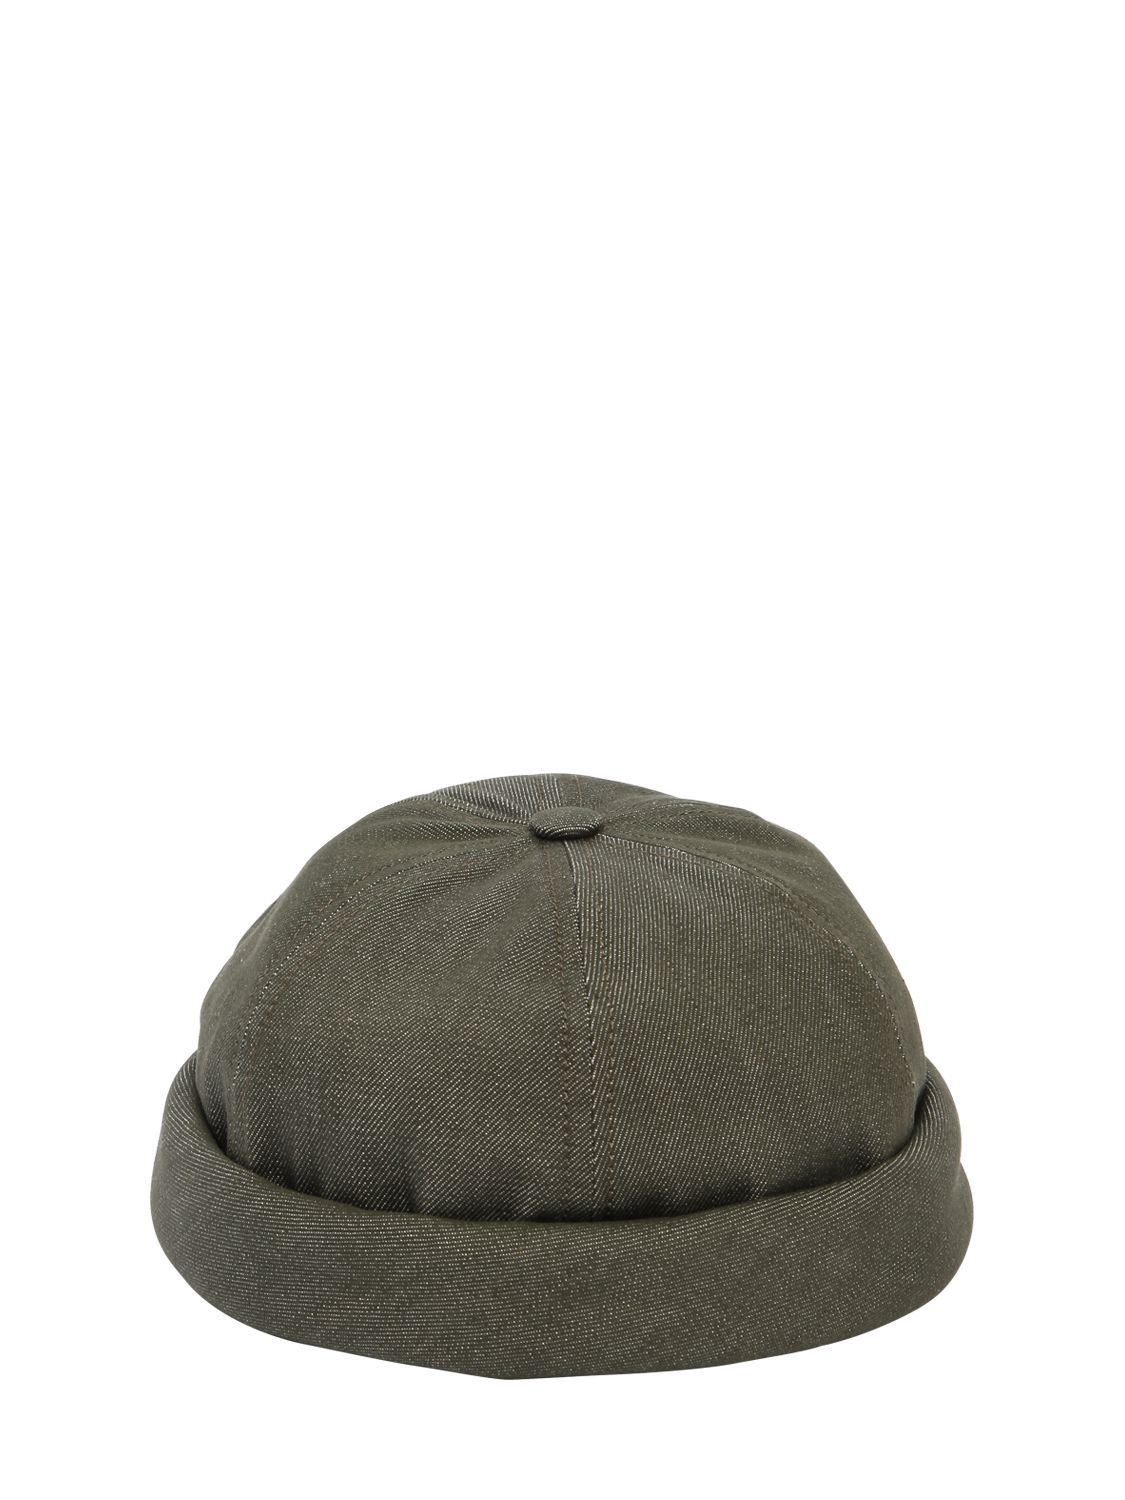 499b989ced5 BETON CIRE HANDMADE WASHED COTTON DENIM SAILOR HAT.  betoncire